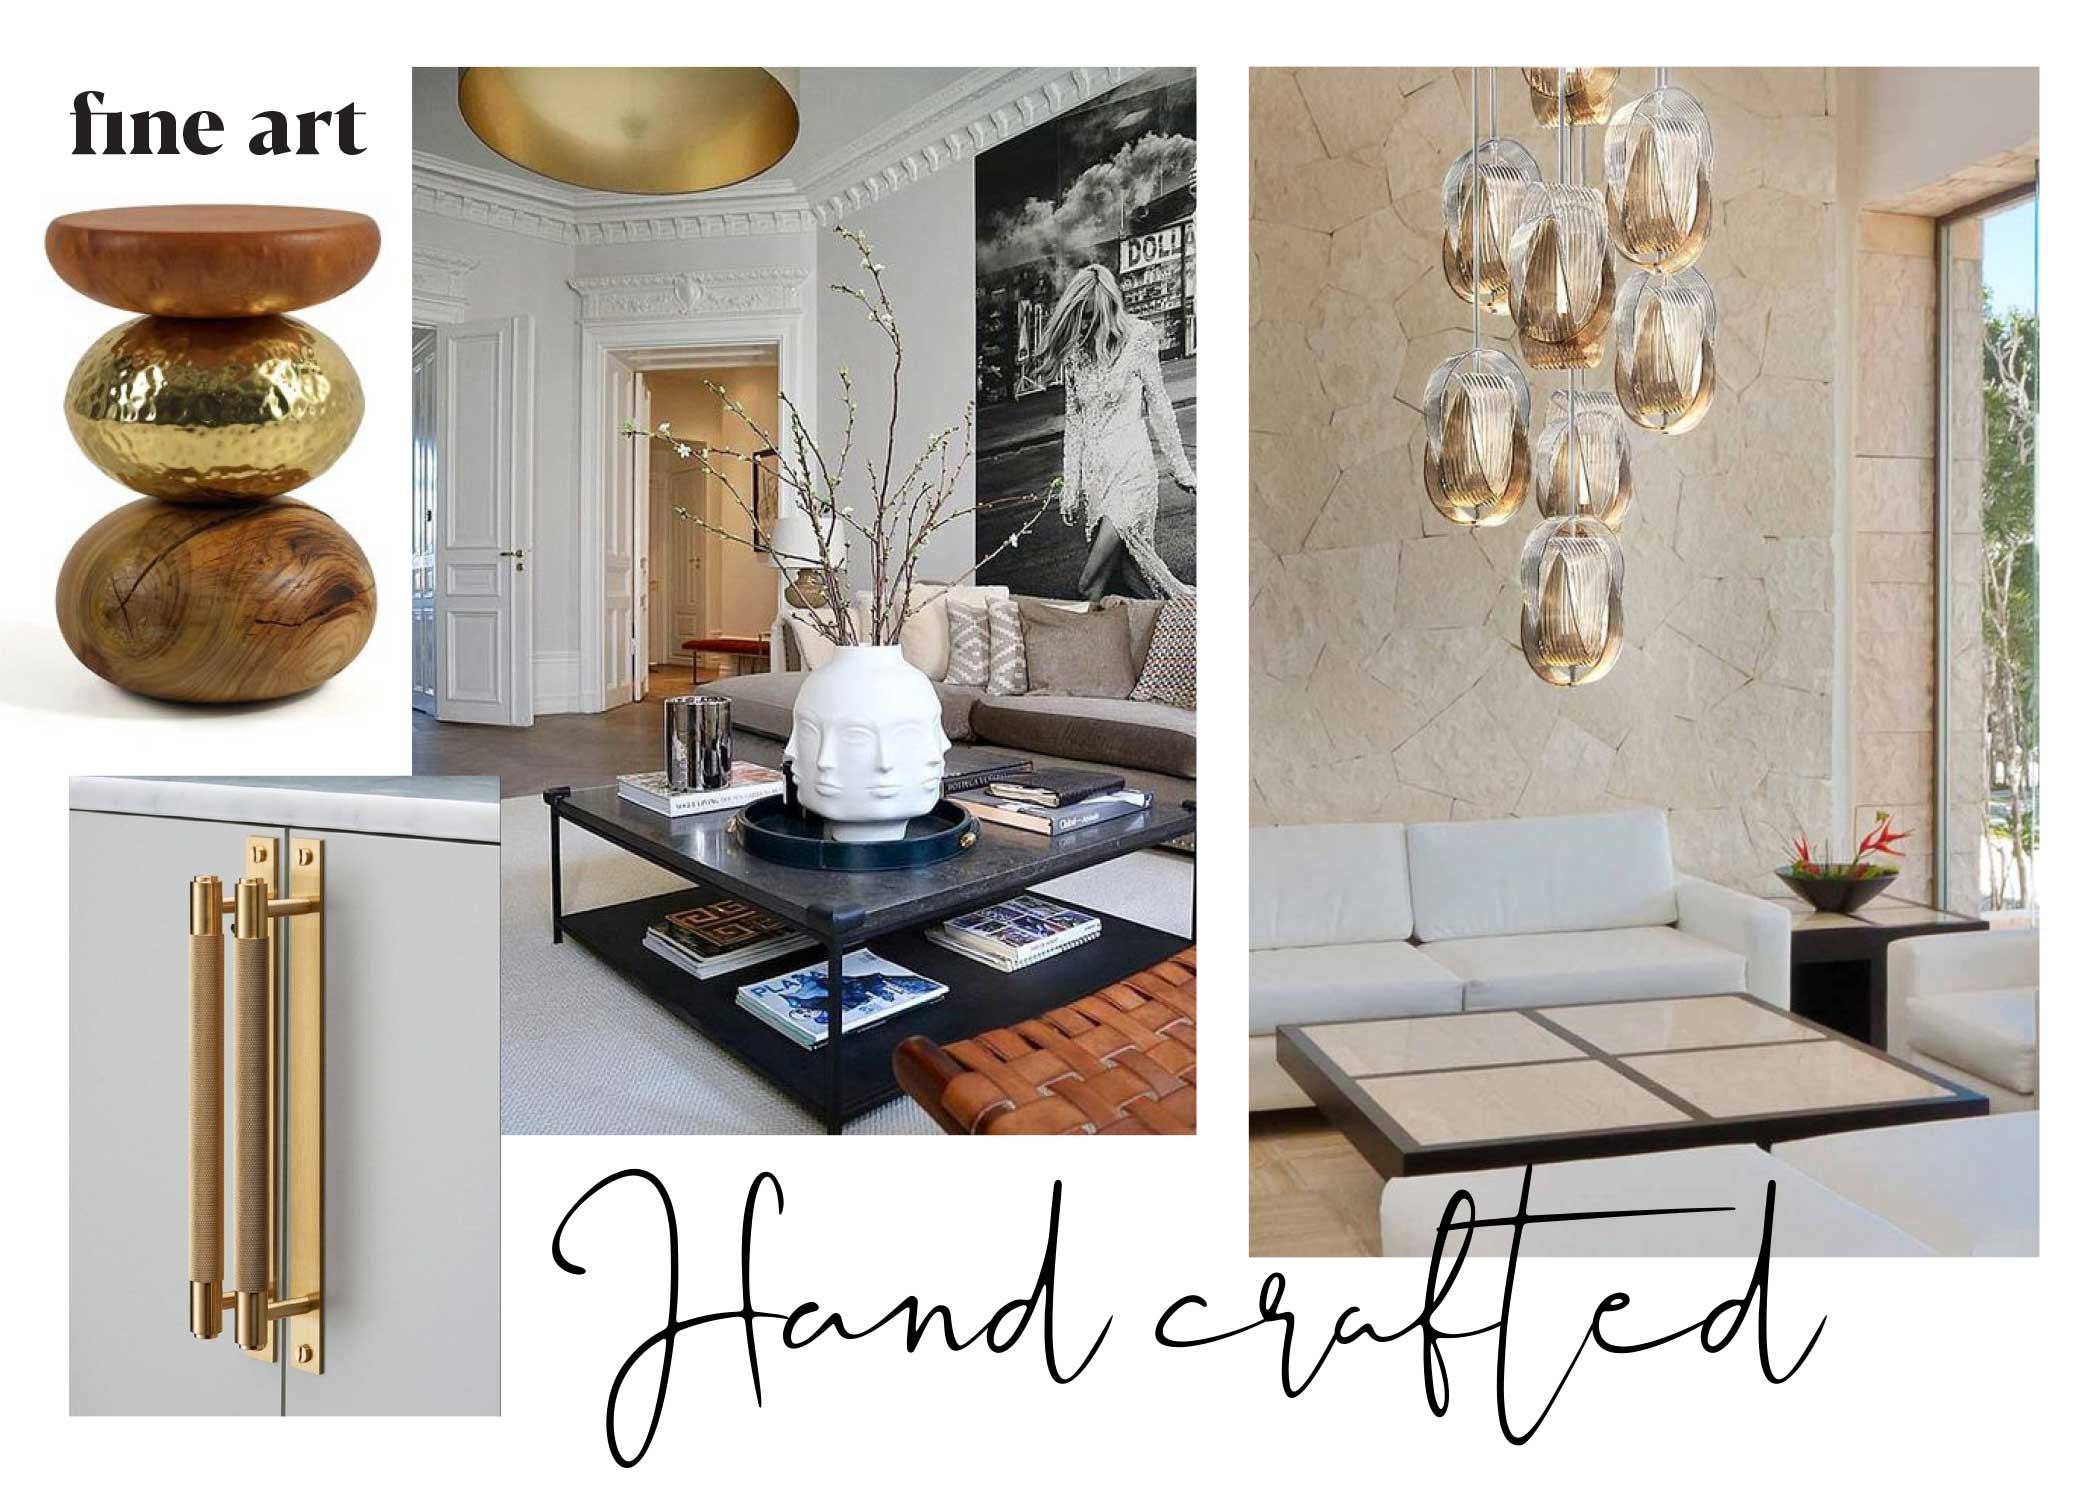 Art Beyond the Walls - Embracing Fine Interior Design